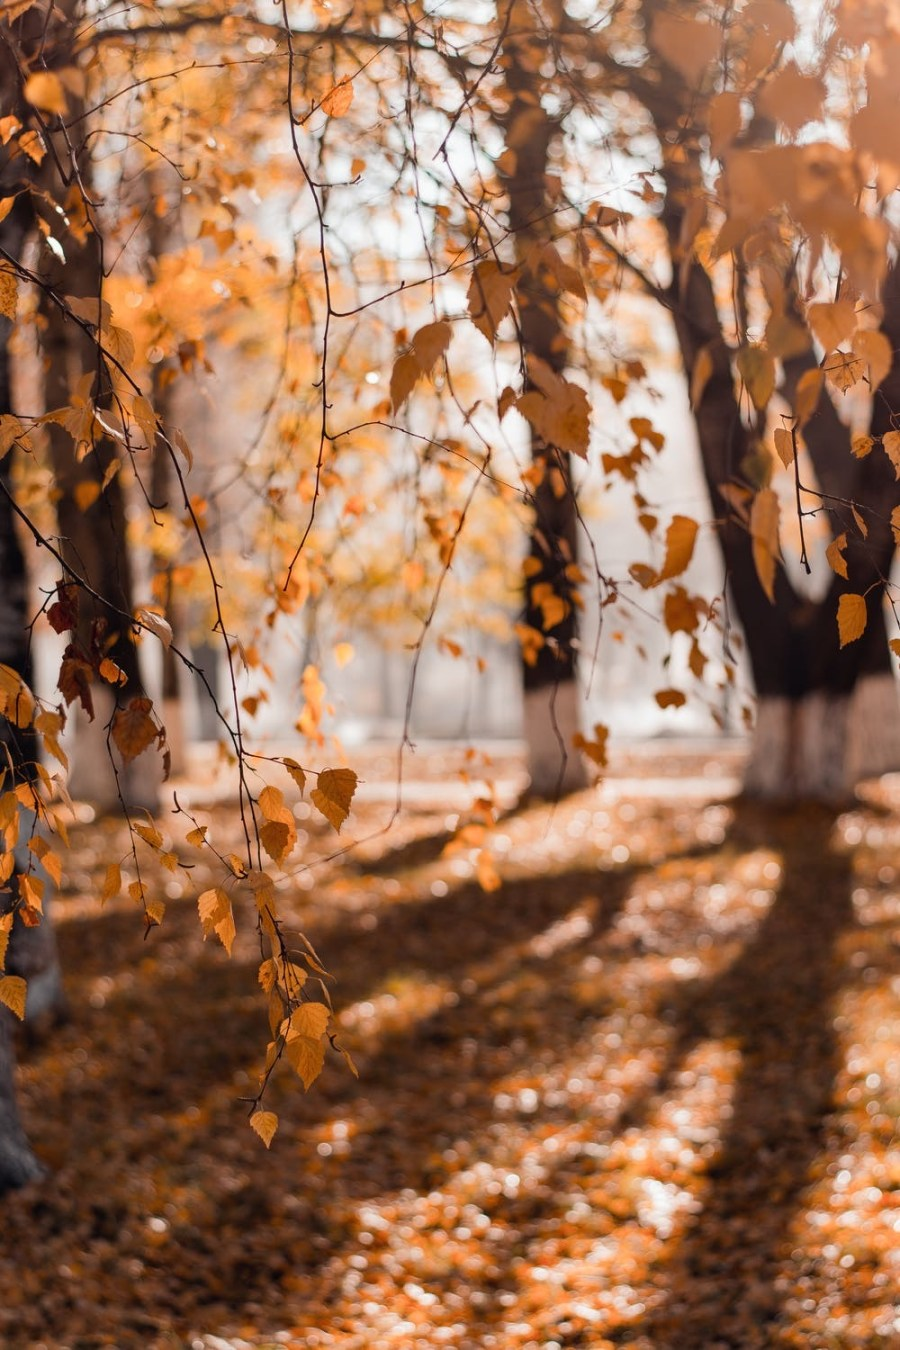 A forest full of tall trees covered in some golden brown leaves, on a white background.